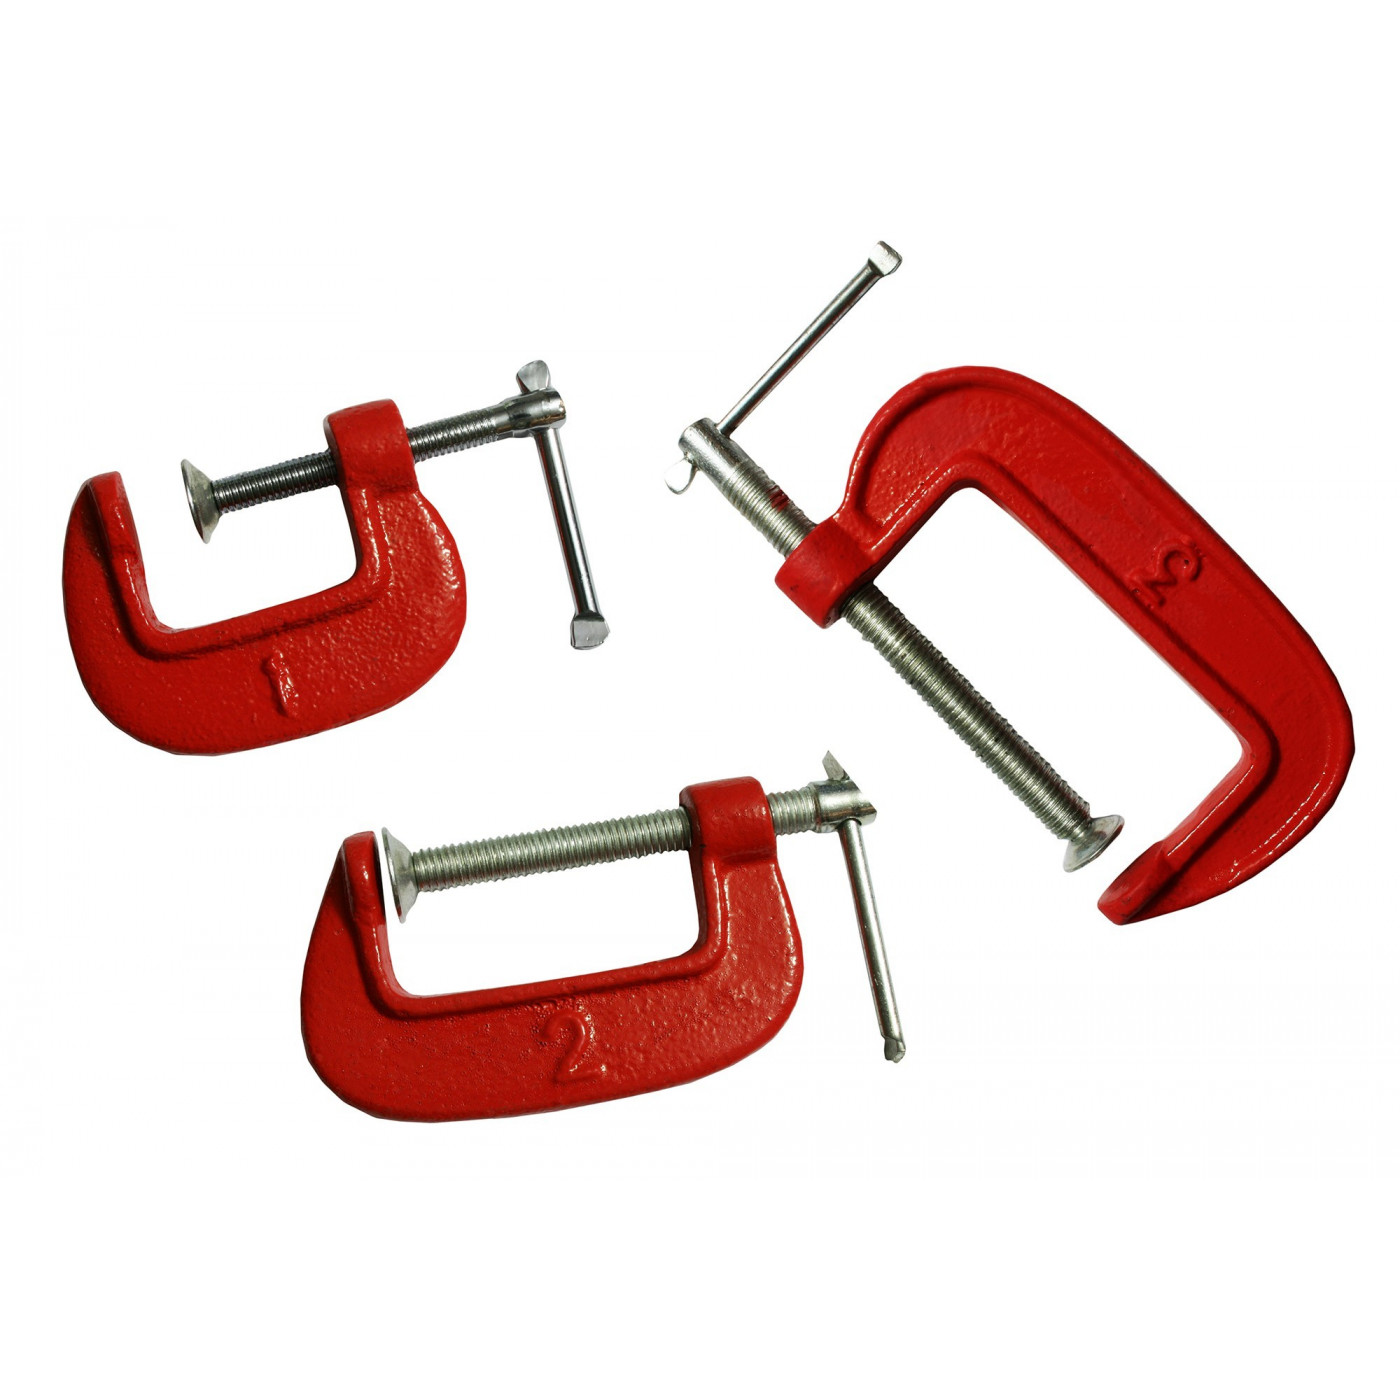 C-clamps set small (1, 2, 3 inch)  - 1